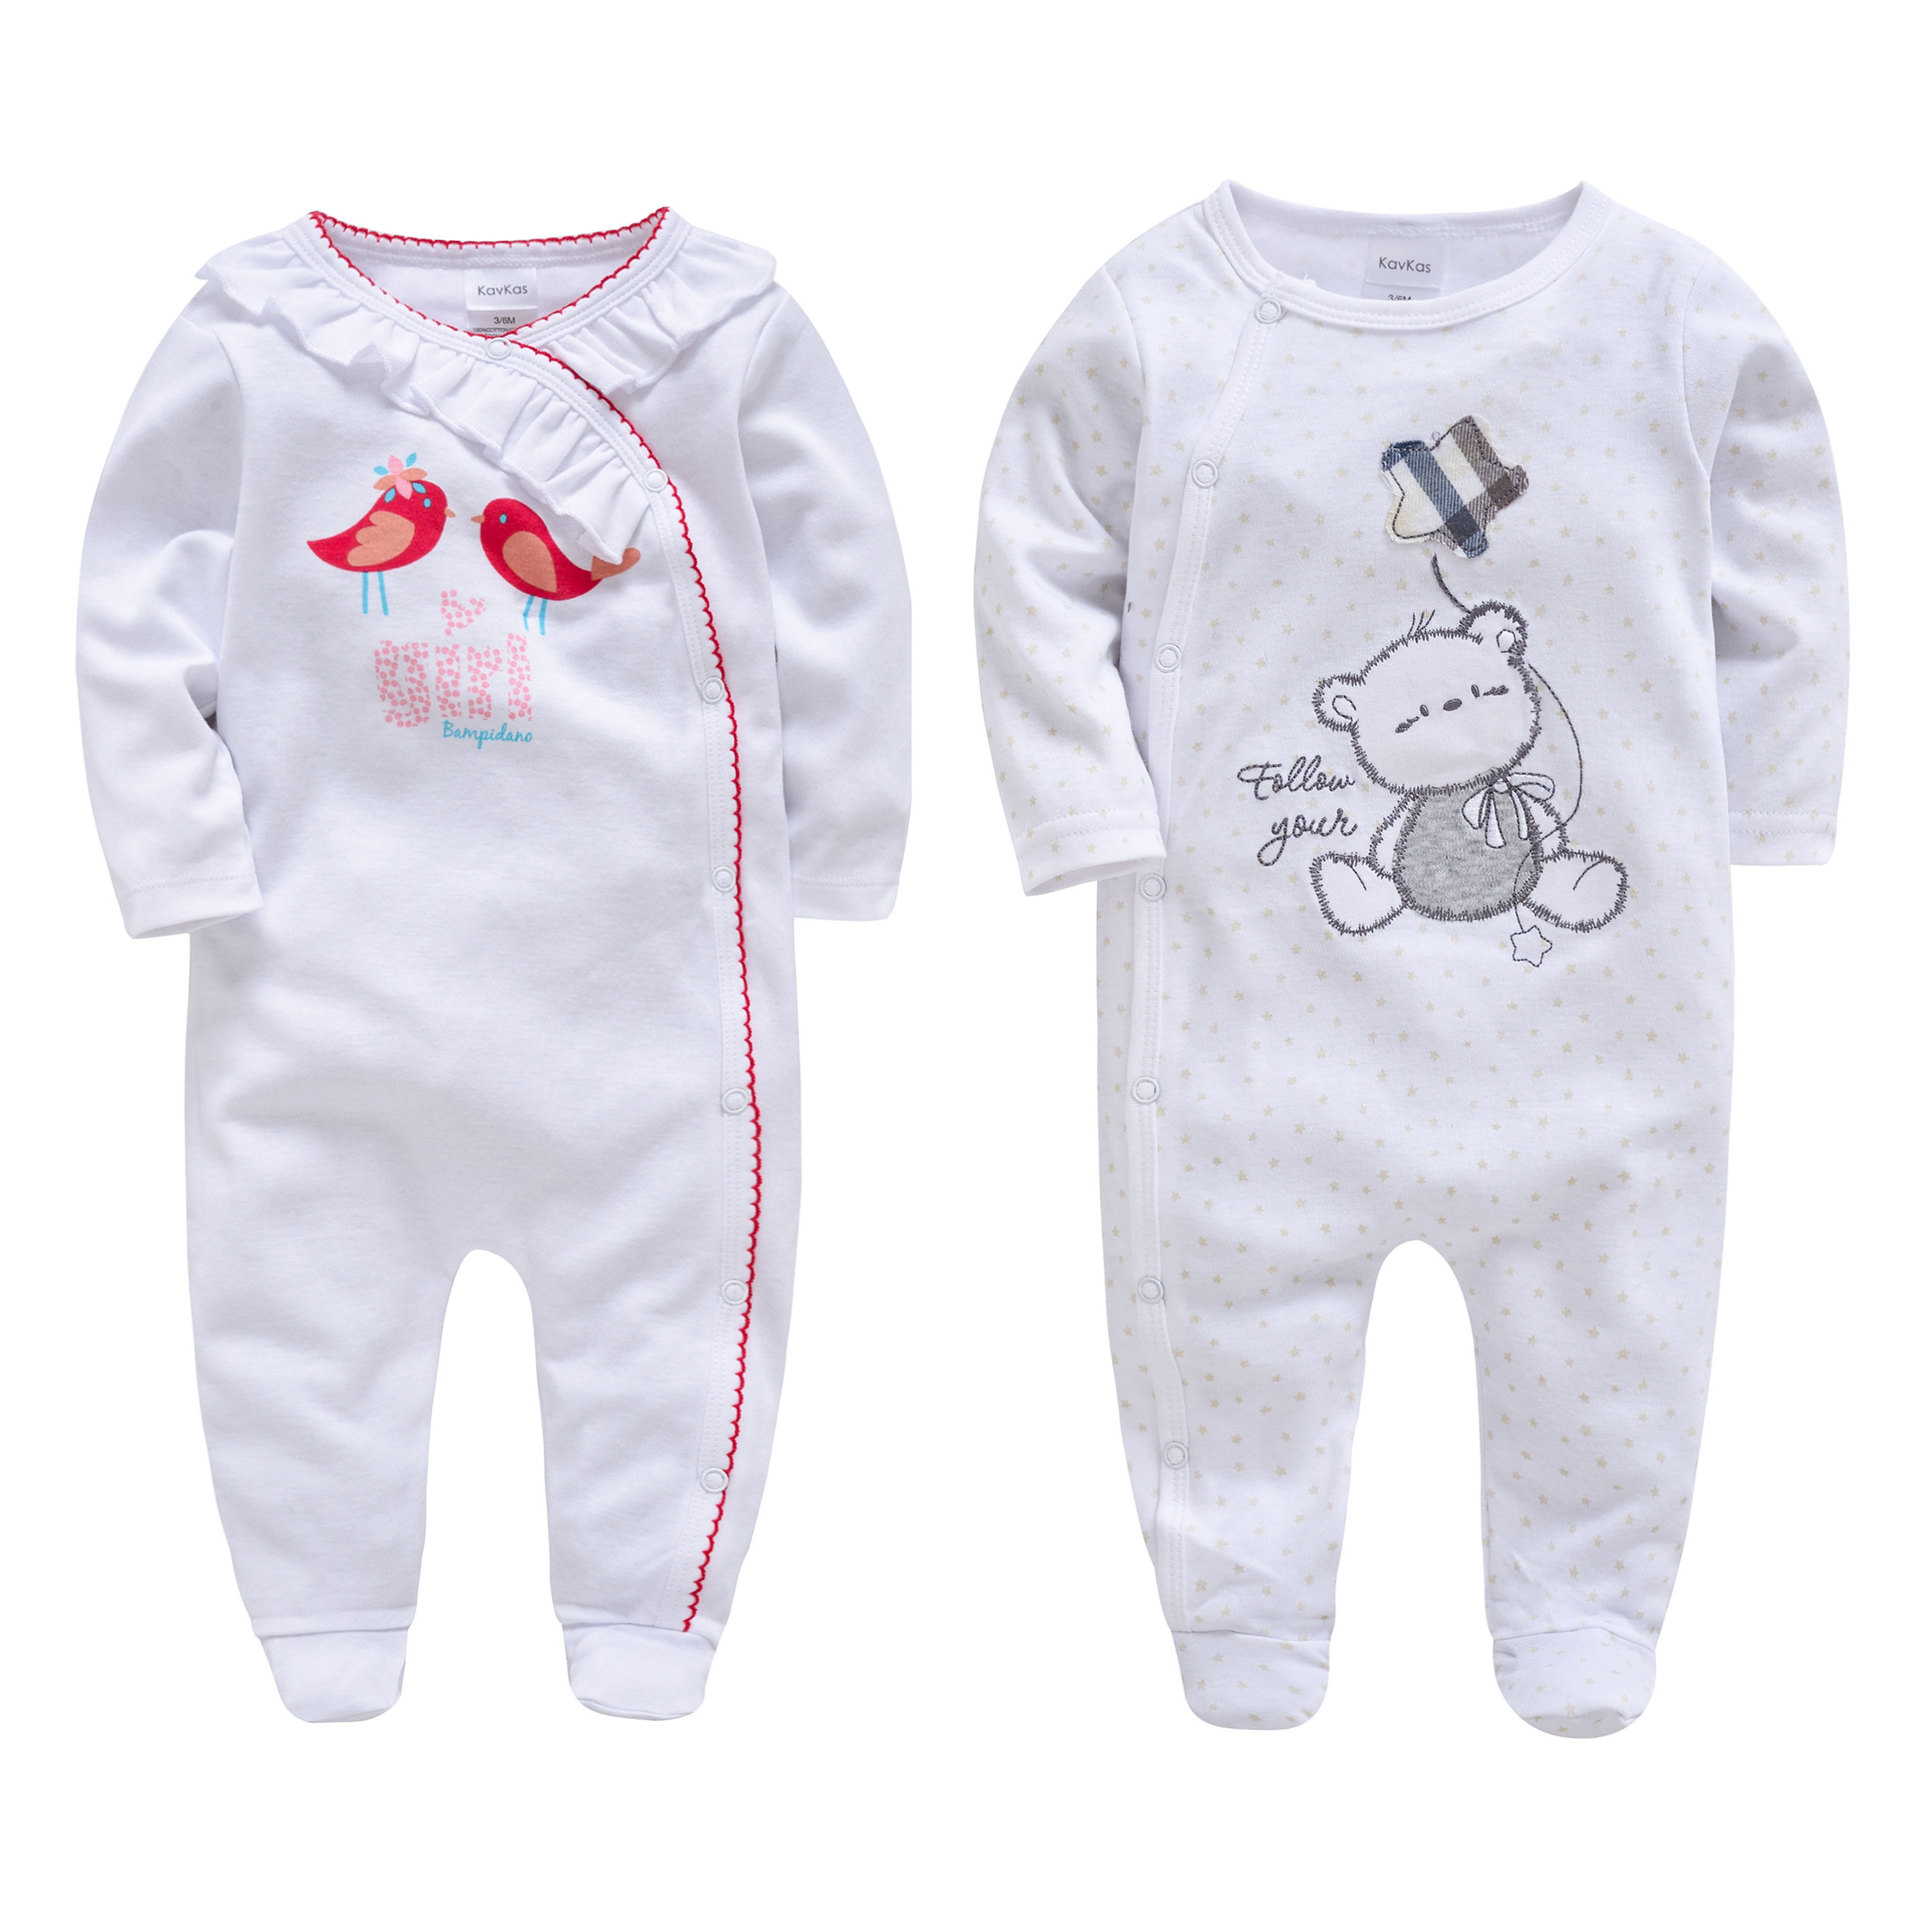 Morningtwo Newborn Baby Boys and Girls Romper Clothes Long Sleeve Jumpsuit Cute Animal Comfortable Clothing For New Born Babies ...